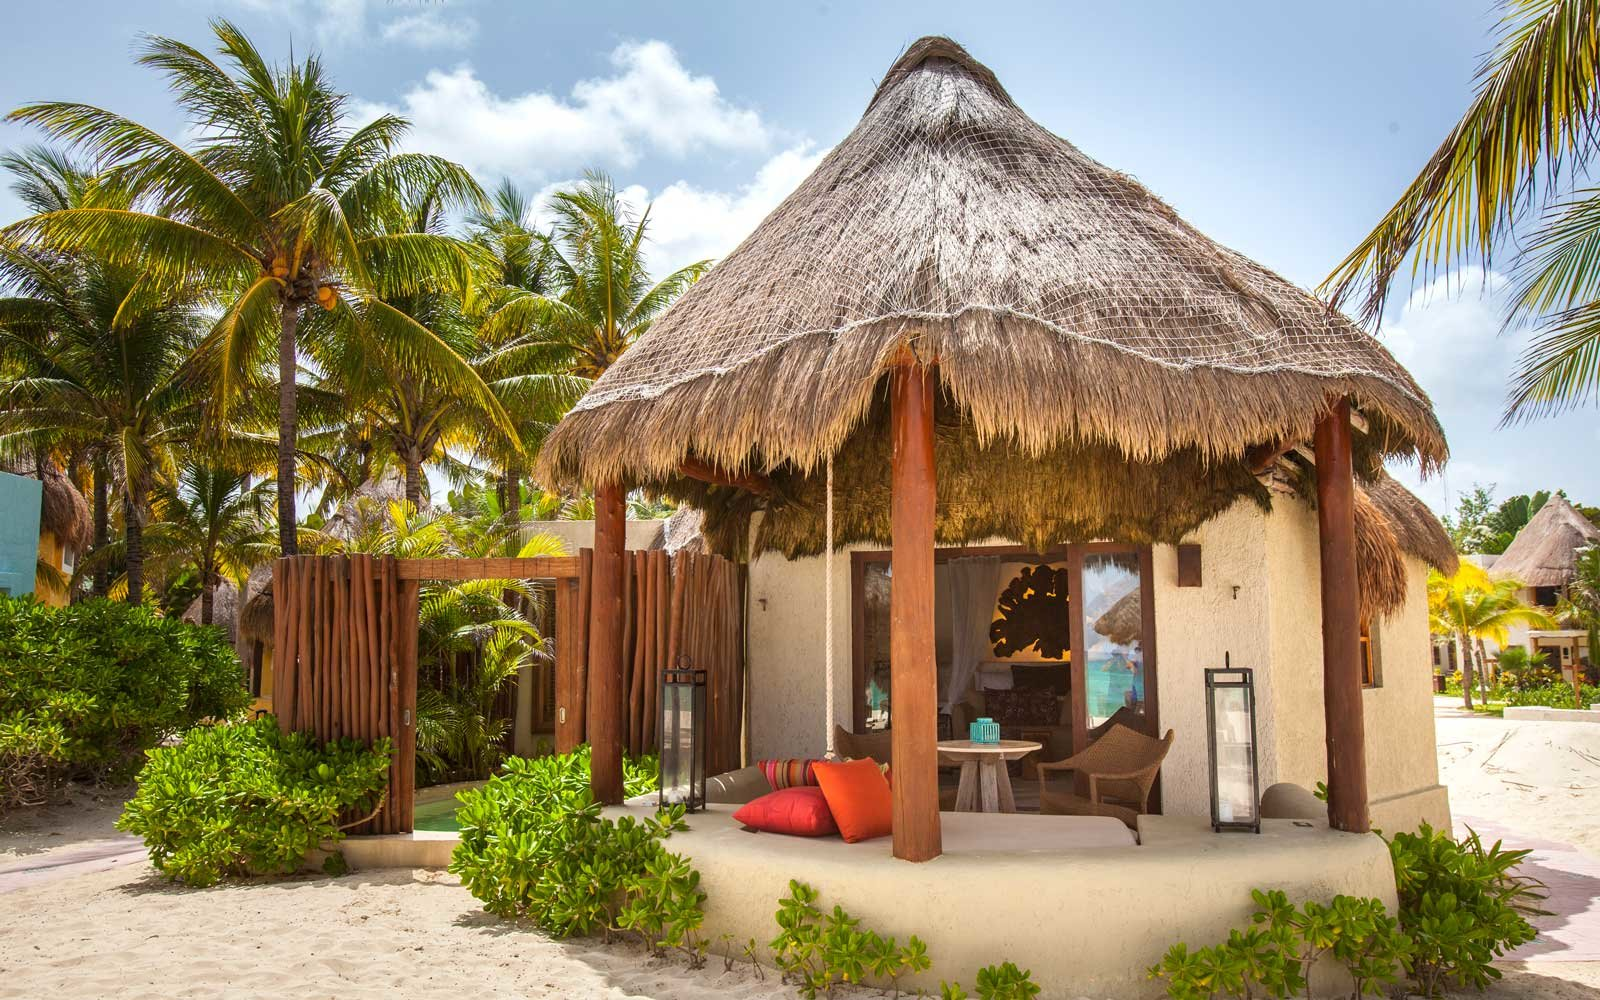 12 secluded bungalows in mexico for your next beach vacation rh travelandleisure com